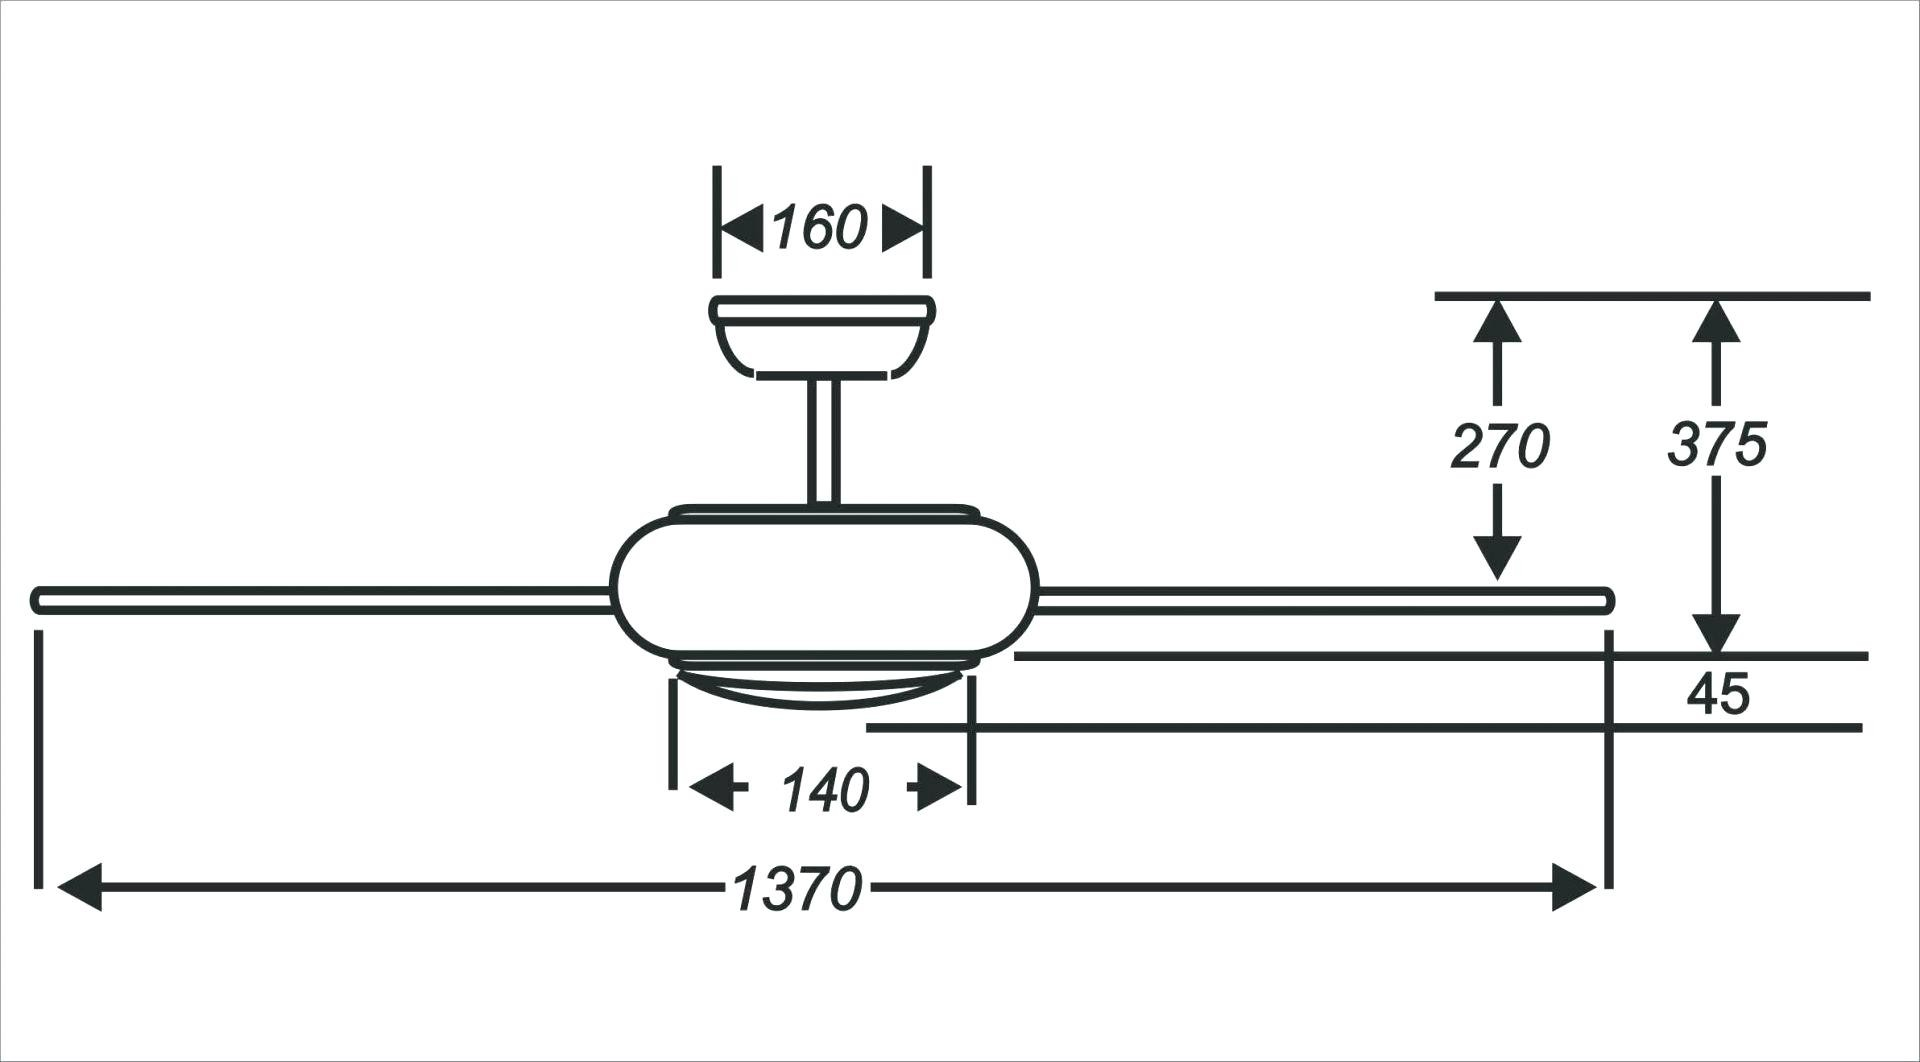 Wiring Diagram Ceiling Light Pull Switch Best Ceiling Fan Light Switch Wiring Diagram Electrical Pull Chain